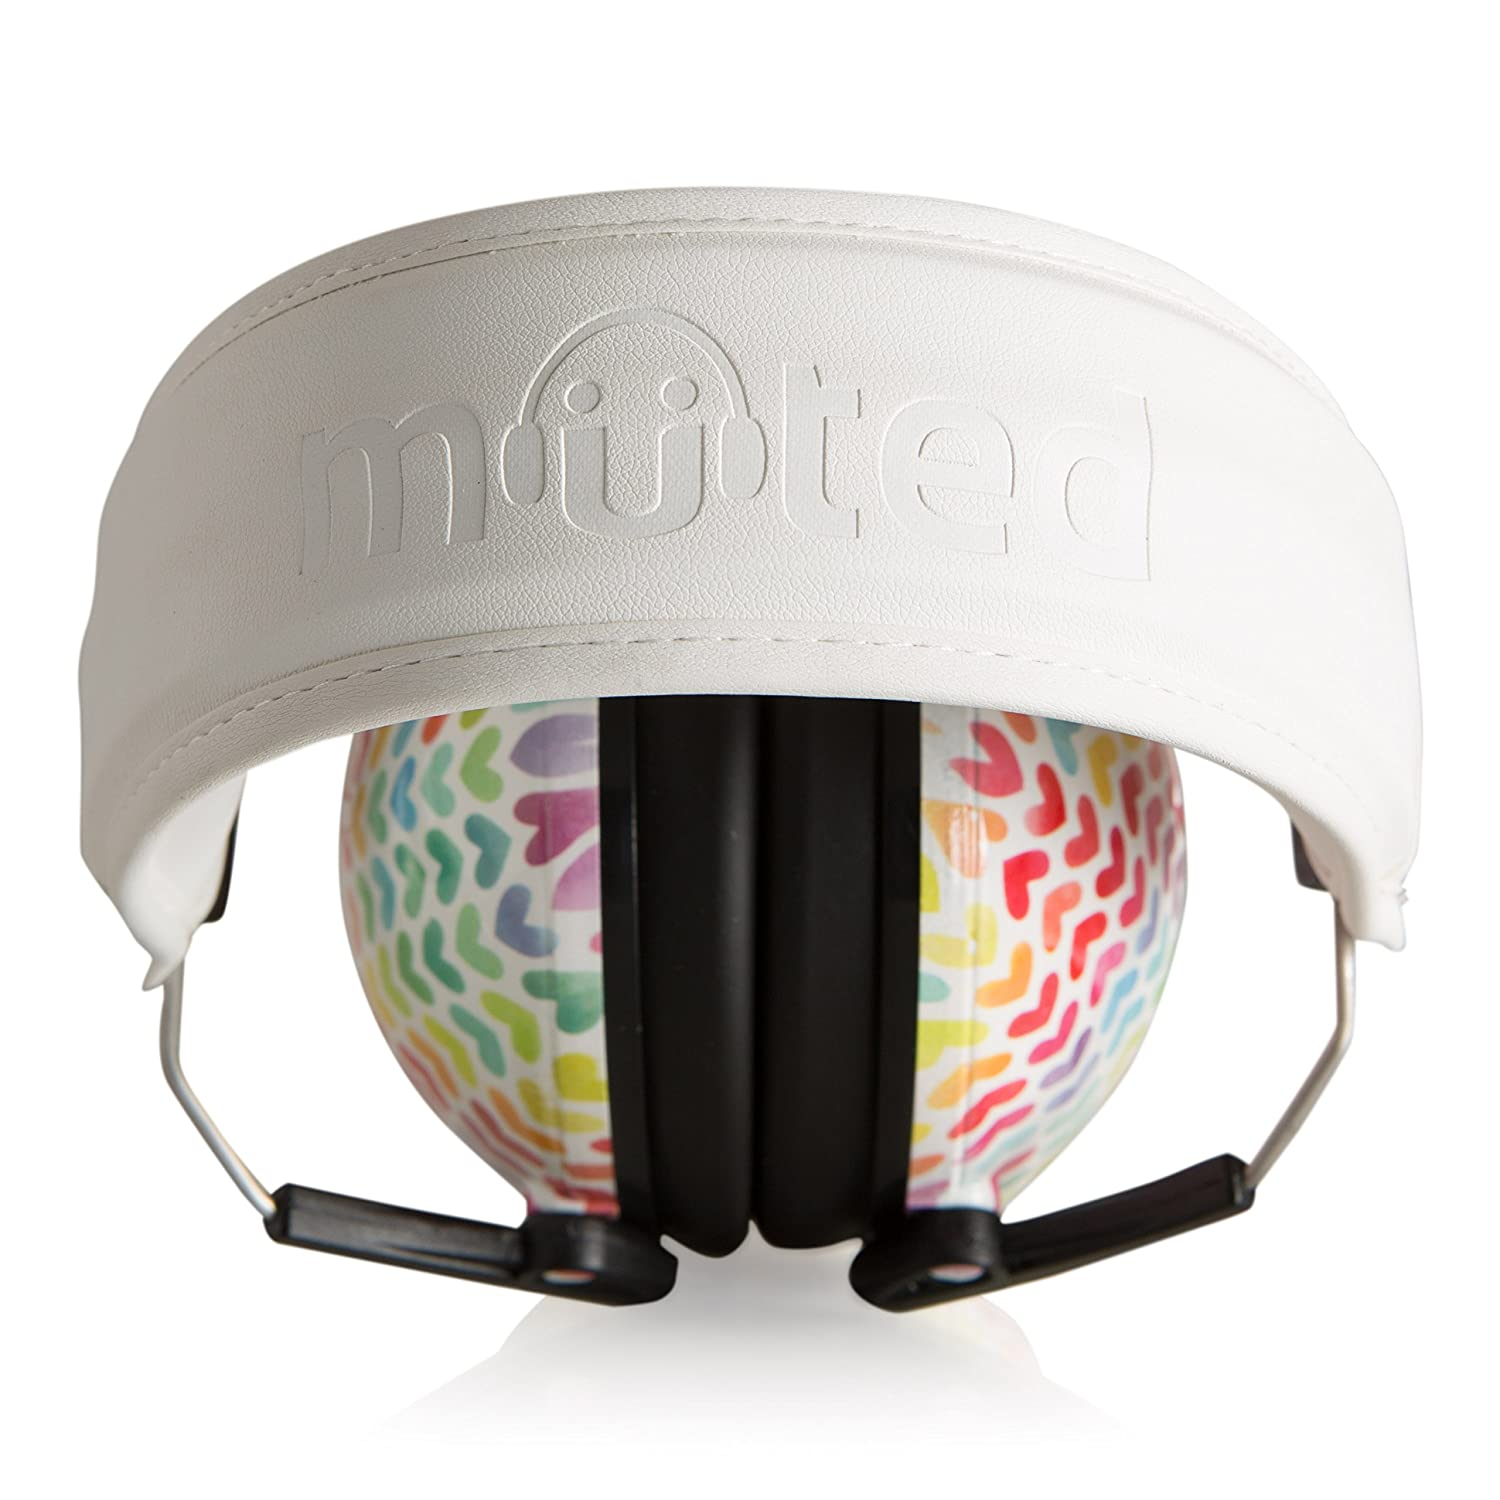 Muted Designer Hearing Protection For Infants /& Kids Rainbow Hearts Adjustable Childrens Ear Muffs from Toddler to Teen